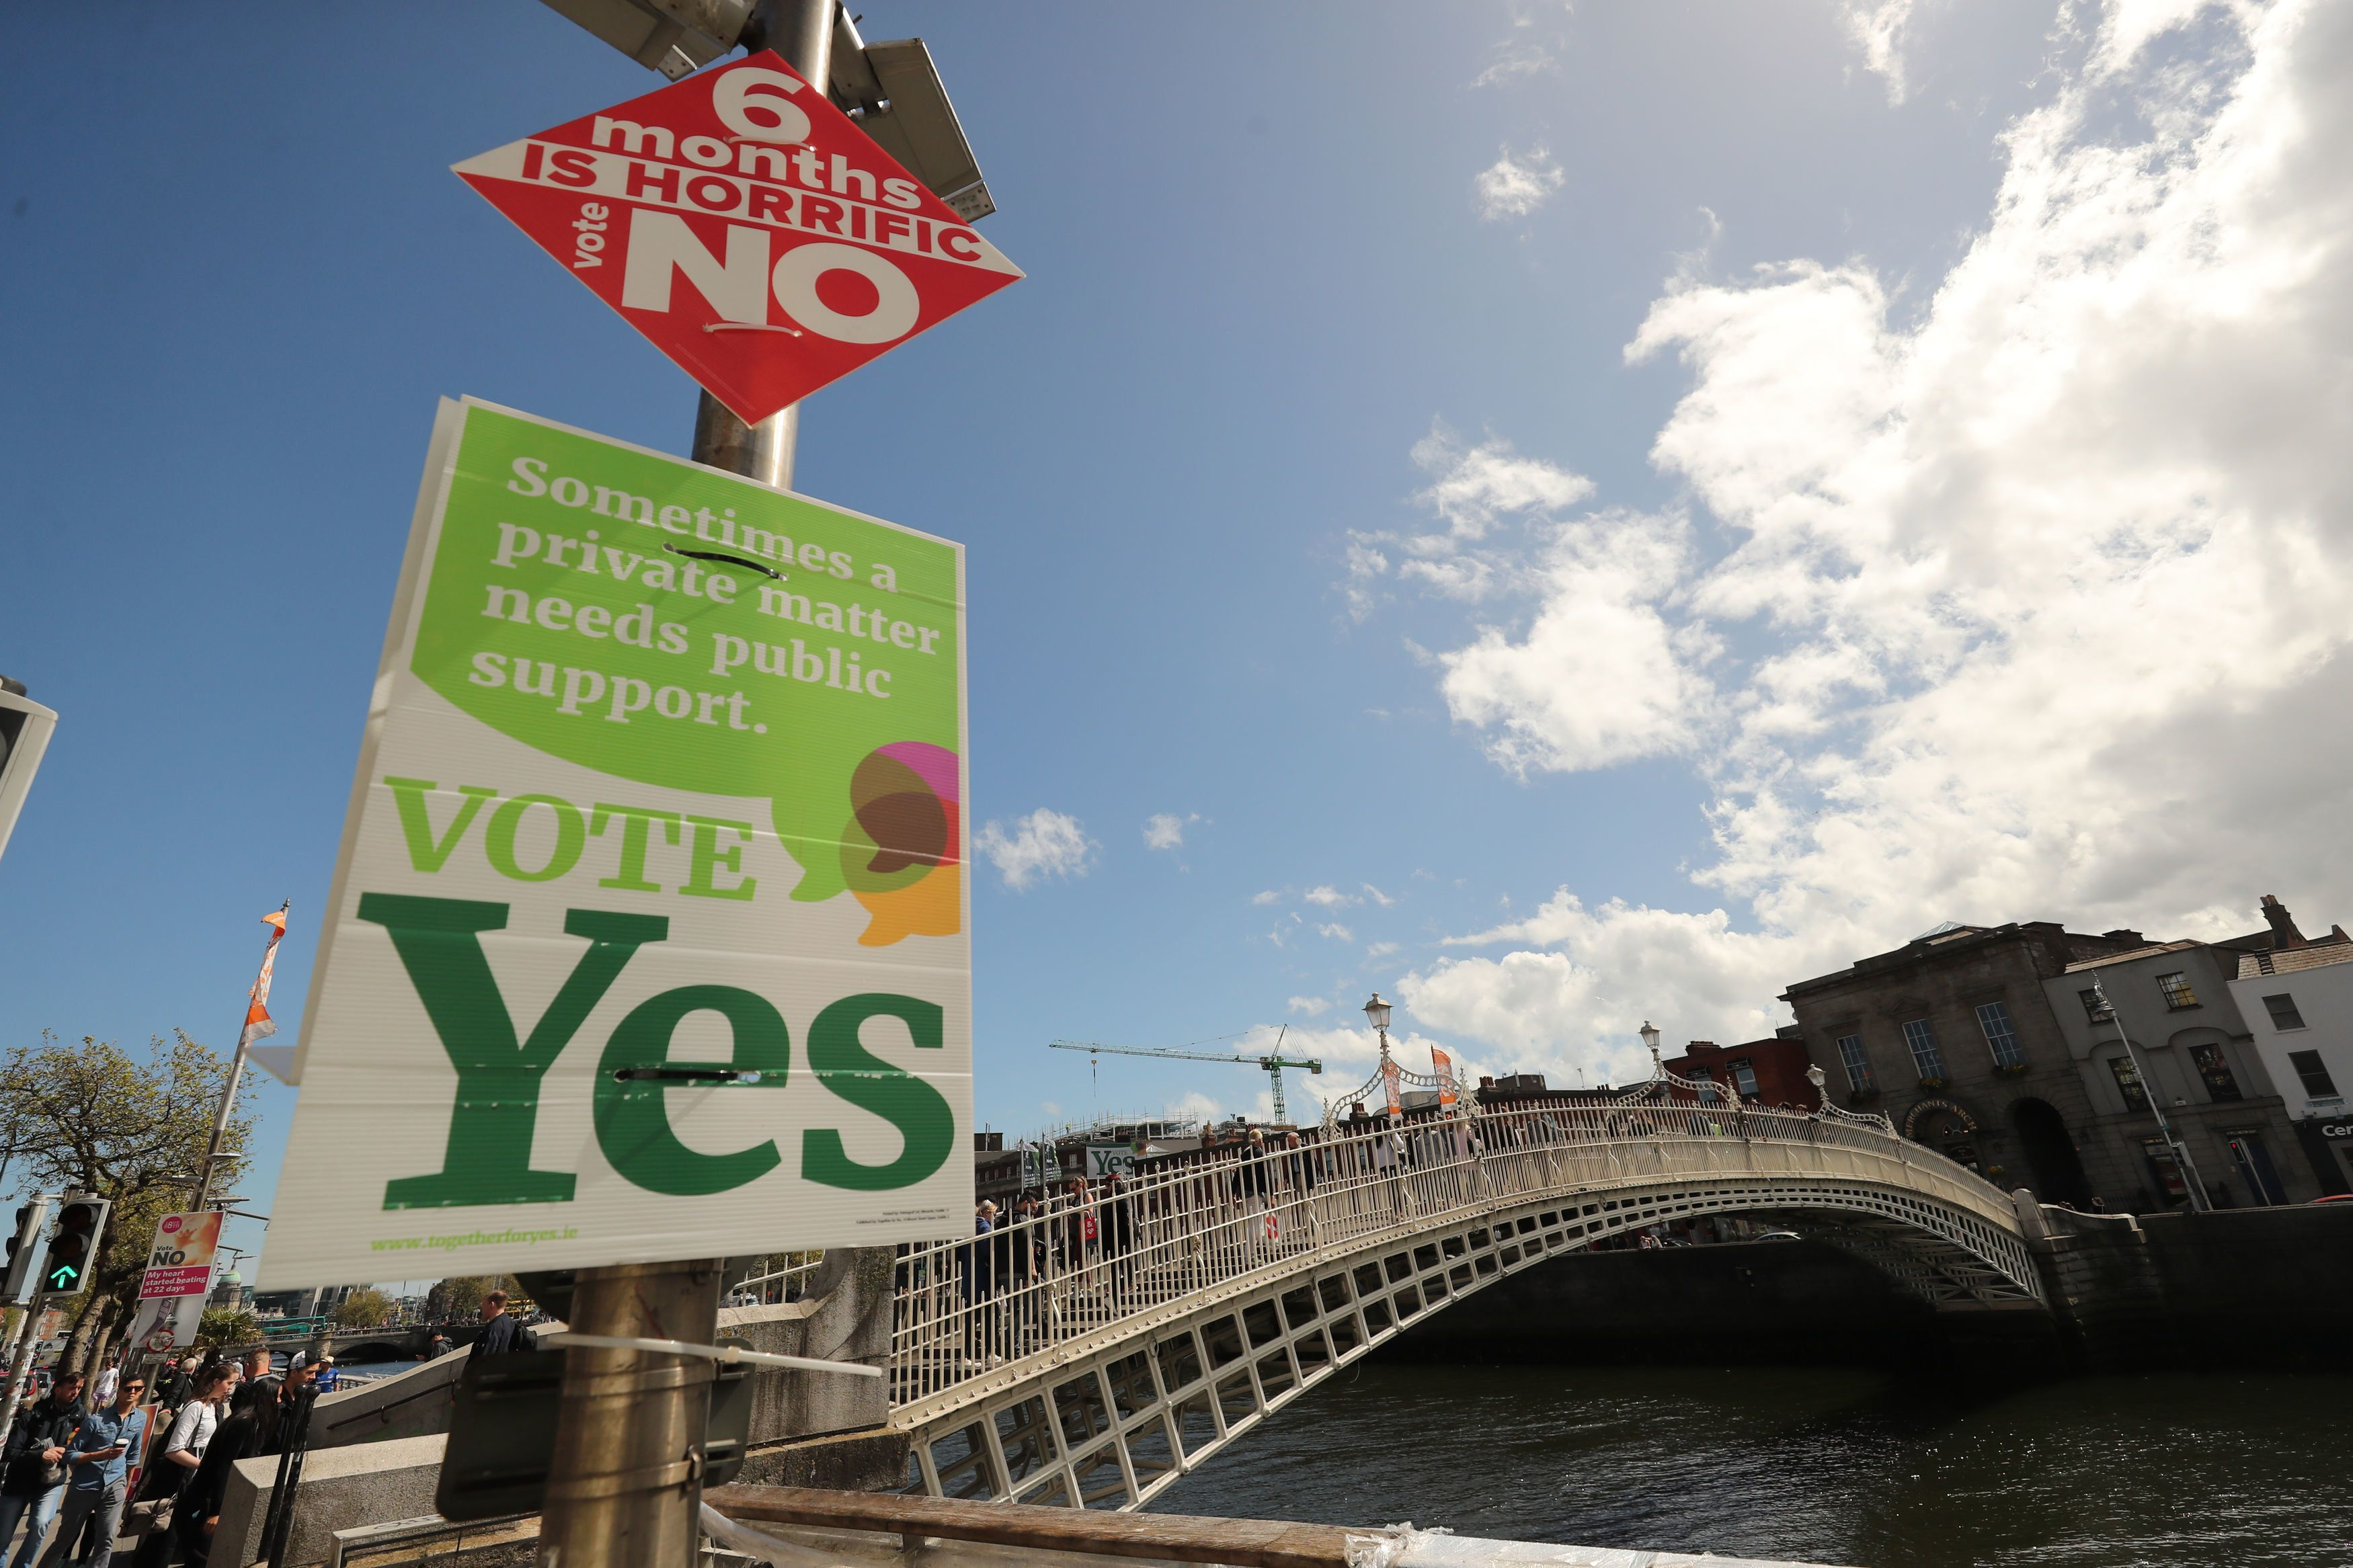 All eyes on Roscommon in Irish abortion vote